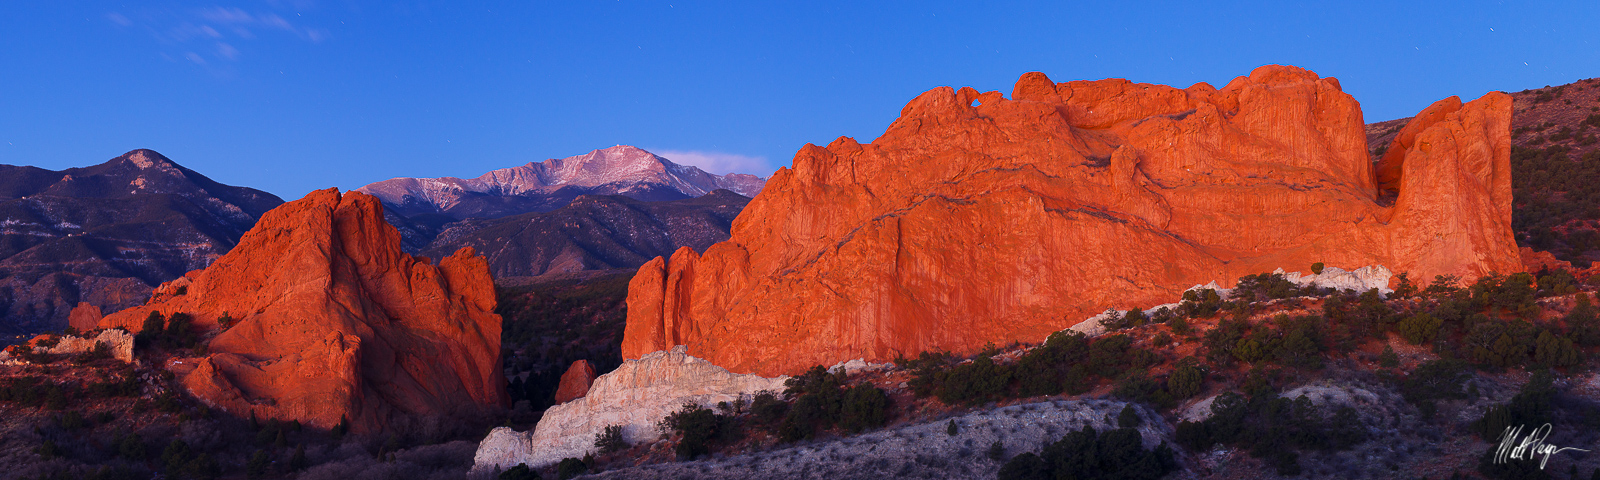 Colorado, Colorado Springs, Garden of the Gods, Landscape, Panorama, stars, Pikes Peak, Kissing Camels, photo